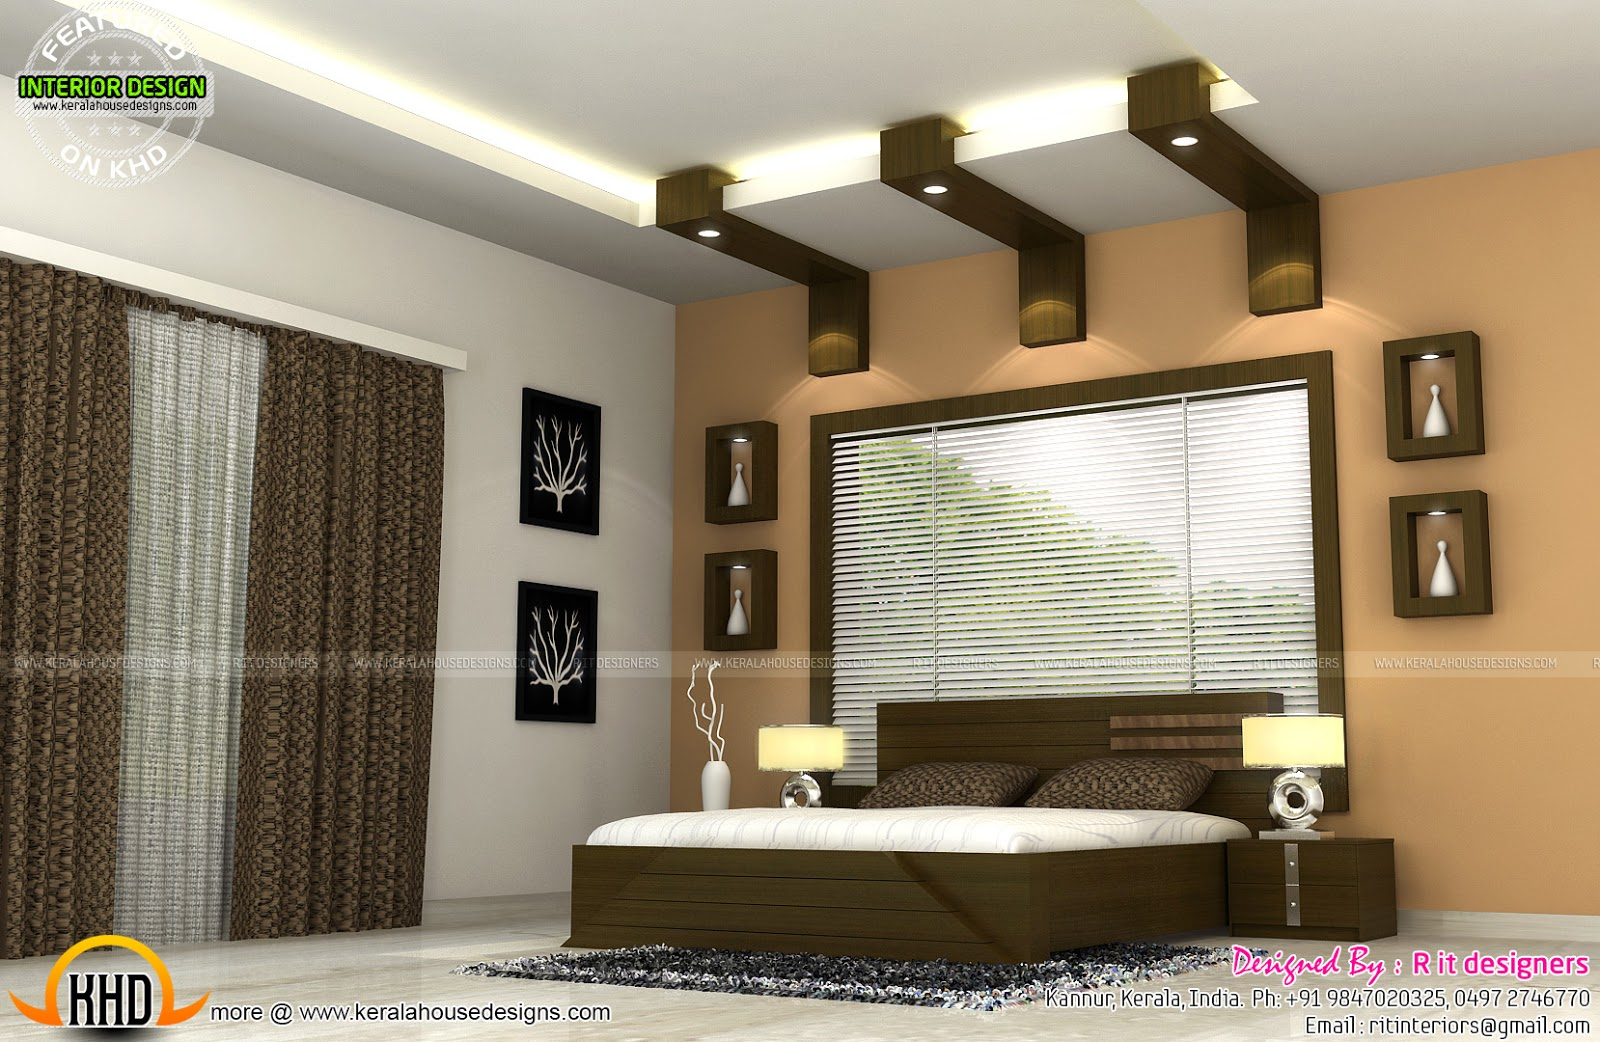 Interiors of bedrooms and kitchen kerala home design and for Bedroom designs images